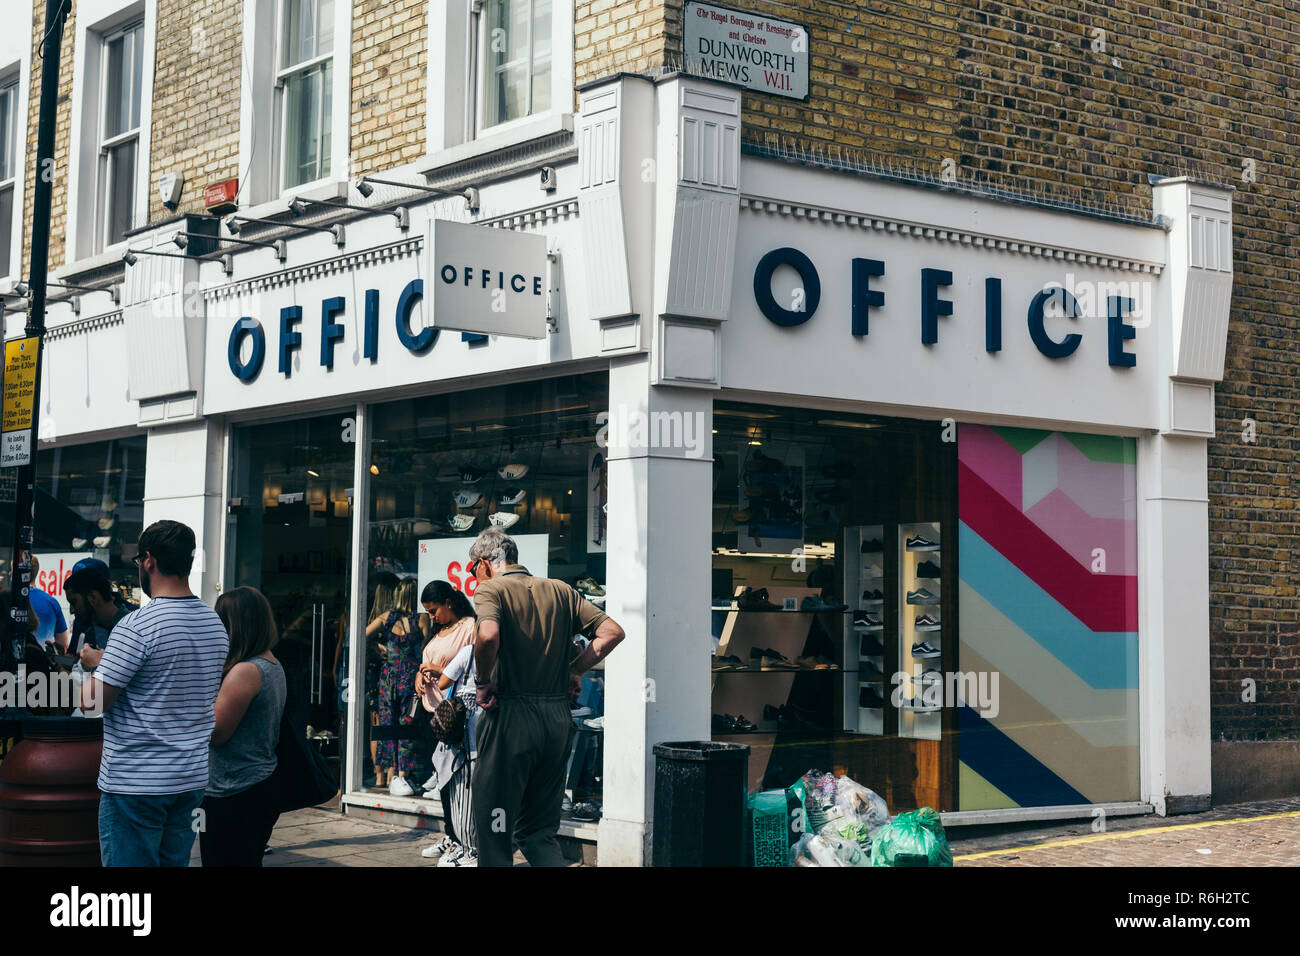 0b4c64668caa London UK - July 20 2018  Office shoe store on Portabello Road in London.  Office Holdings is a fashion retailer owned by the South African company